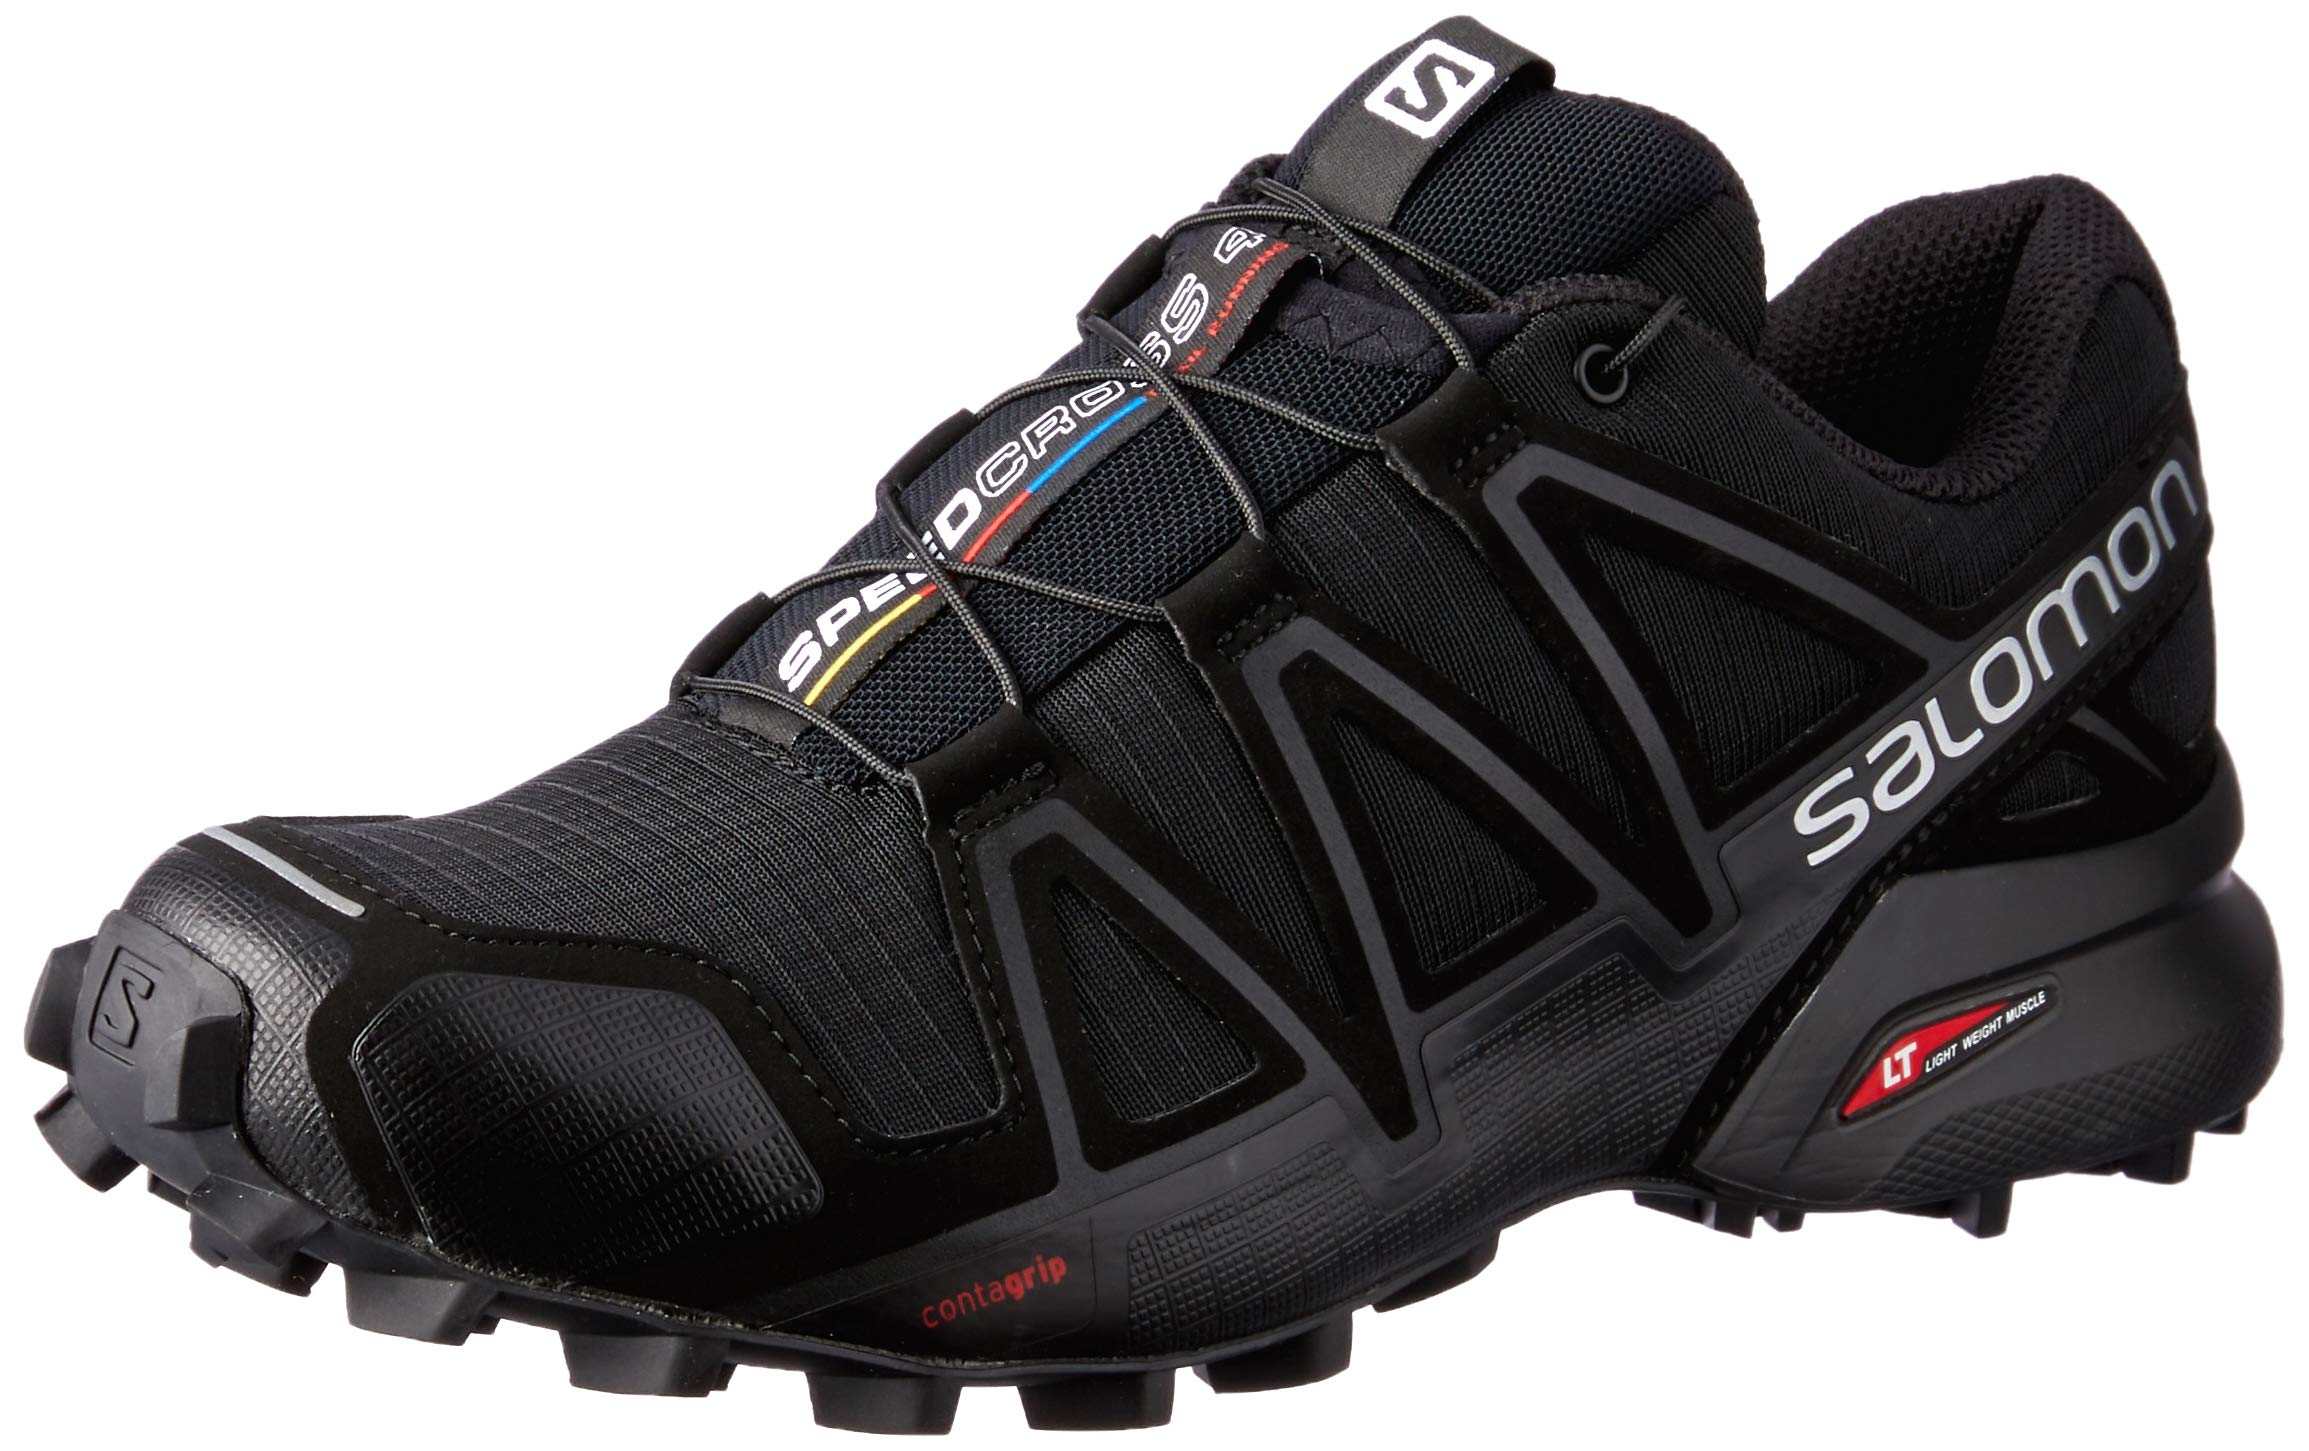 SALOMON Women's Speedcross 4 W Trail Runner, Black Metallic, 7.5 M US by SALOMON